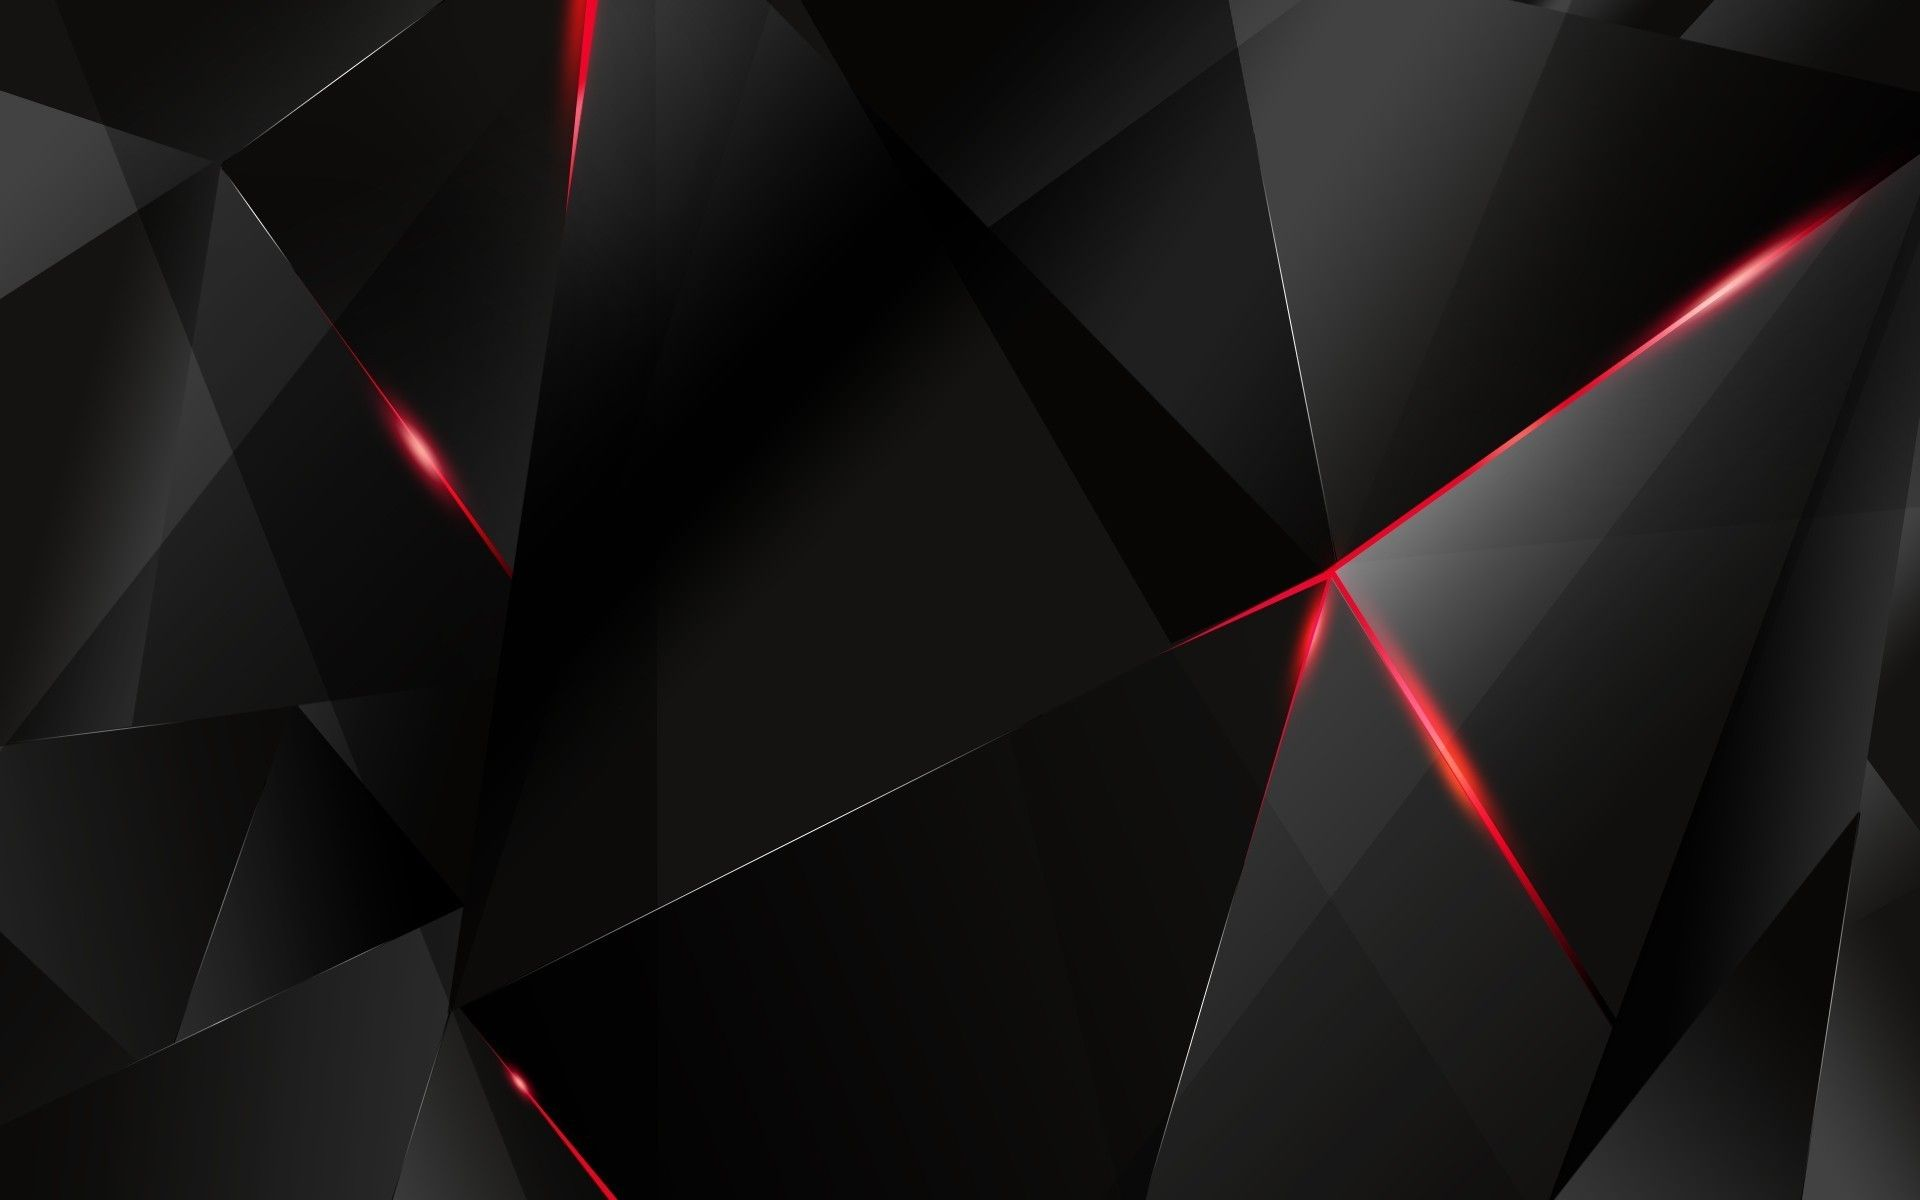 Black Red Wallpapers Red And Black Wallpaper Black Wallpaper Red Wallpaper